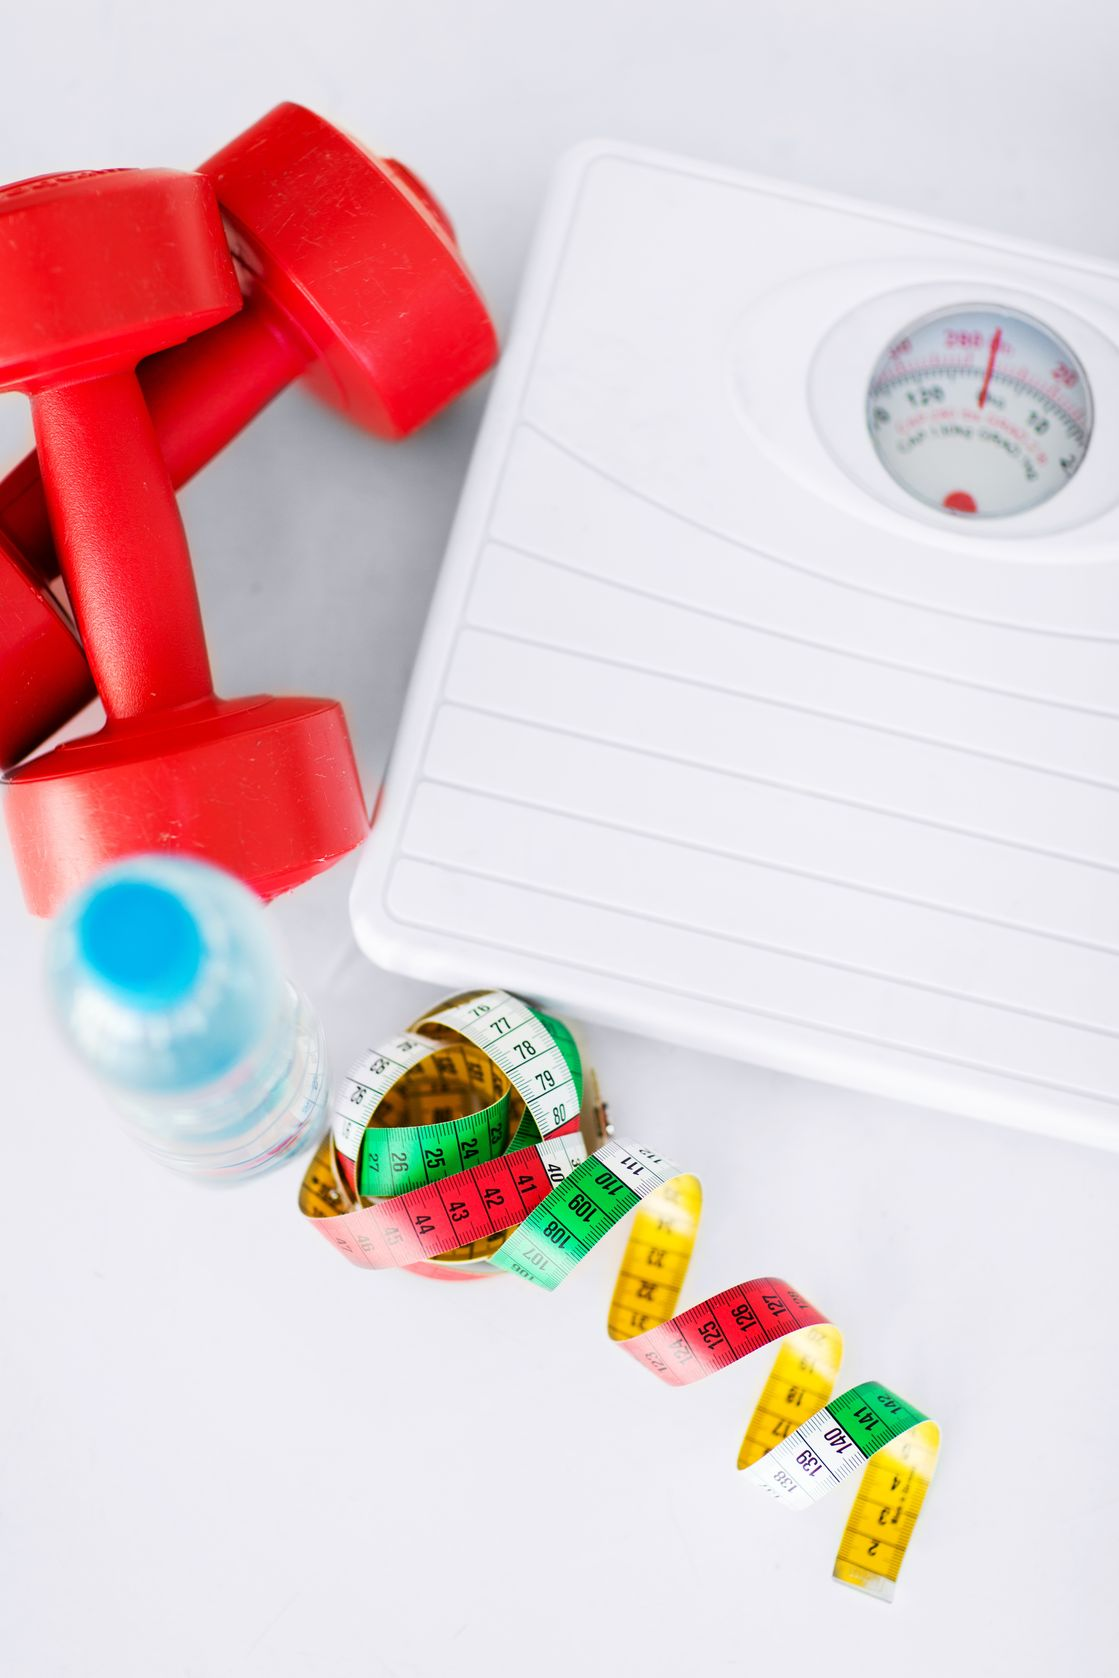 Measuring tape and scale. https://www.info-on-high-blood-pressure.com/Losing-Weight.html